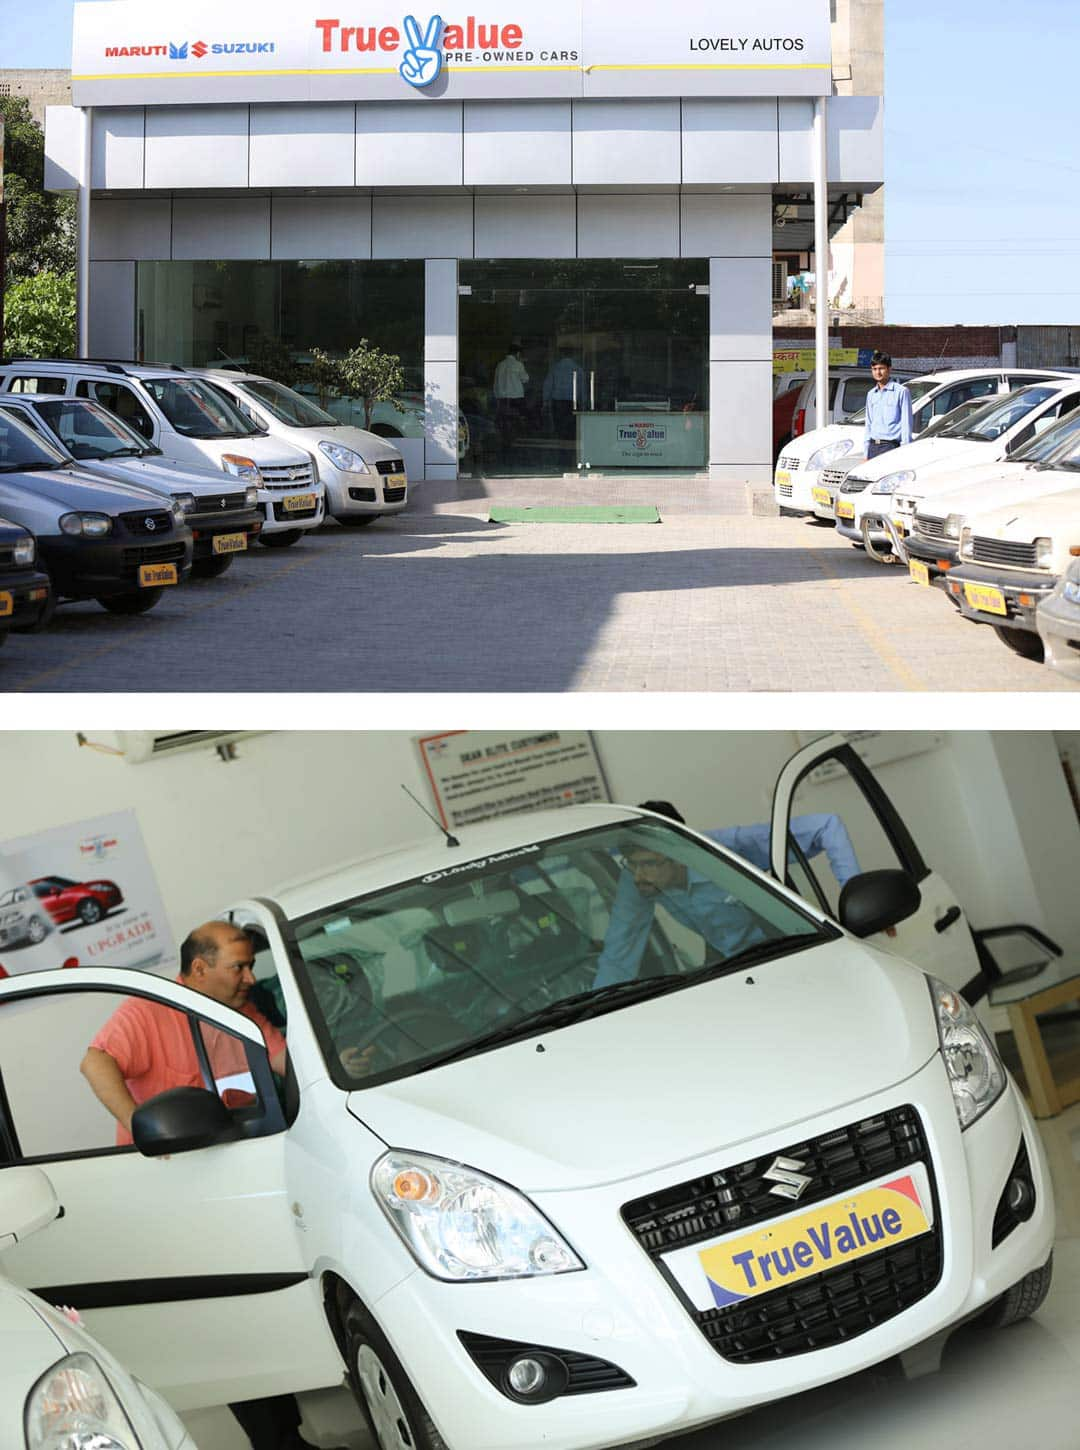 Maruti True value offers cashless car purchasing options to ...